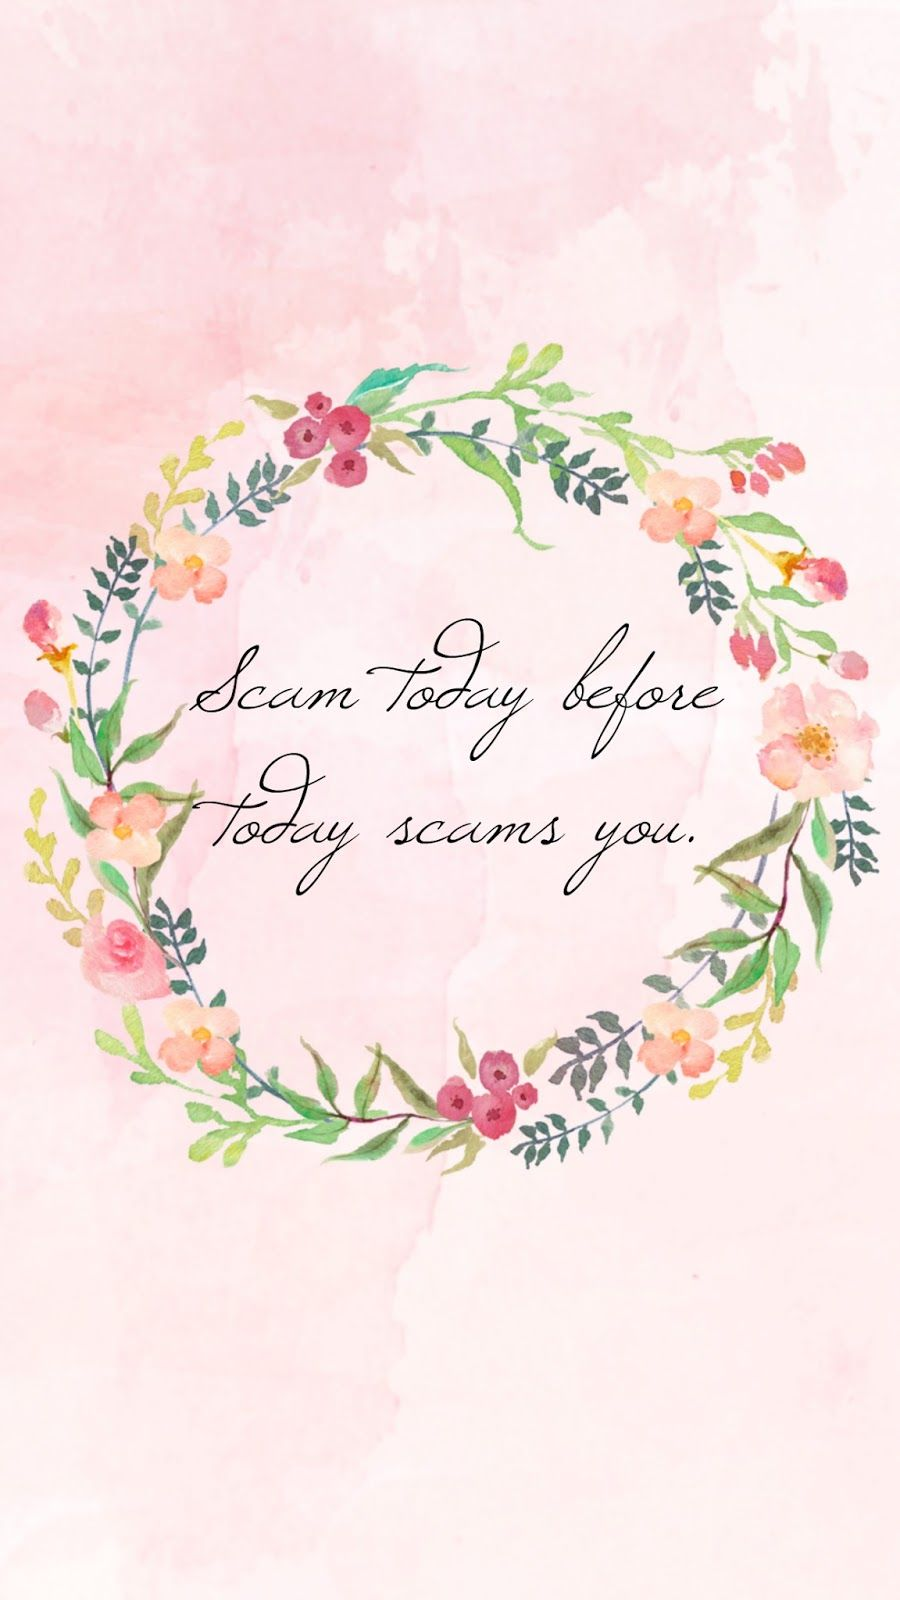 The Welson Wagon Blog: Free Joanne The Scammer Quote Wallpapers #wallpaper #iPhone #joannethescammer #joanneprada #freebie #getoutofmycaucasianhouse